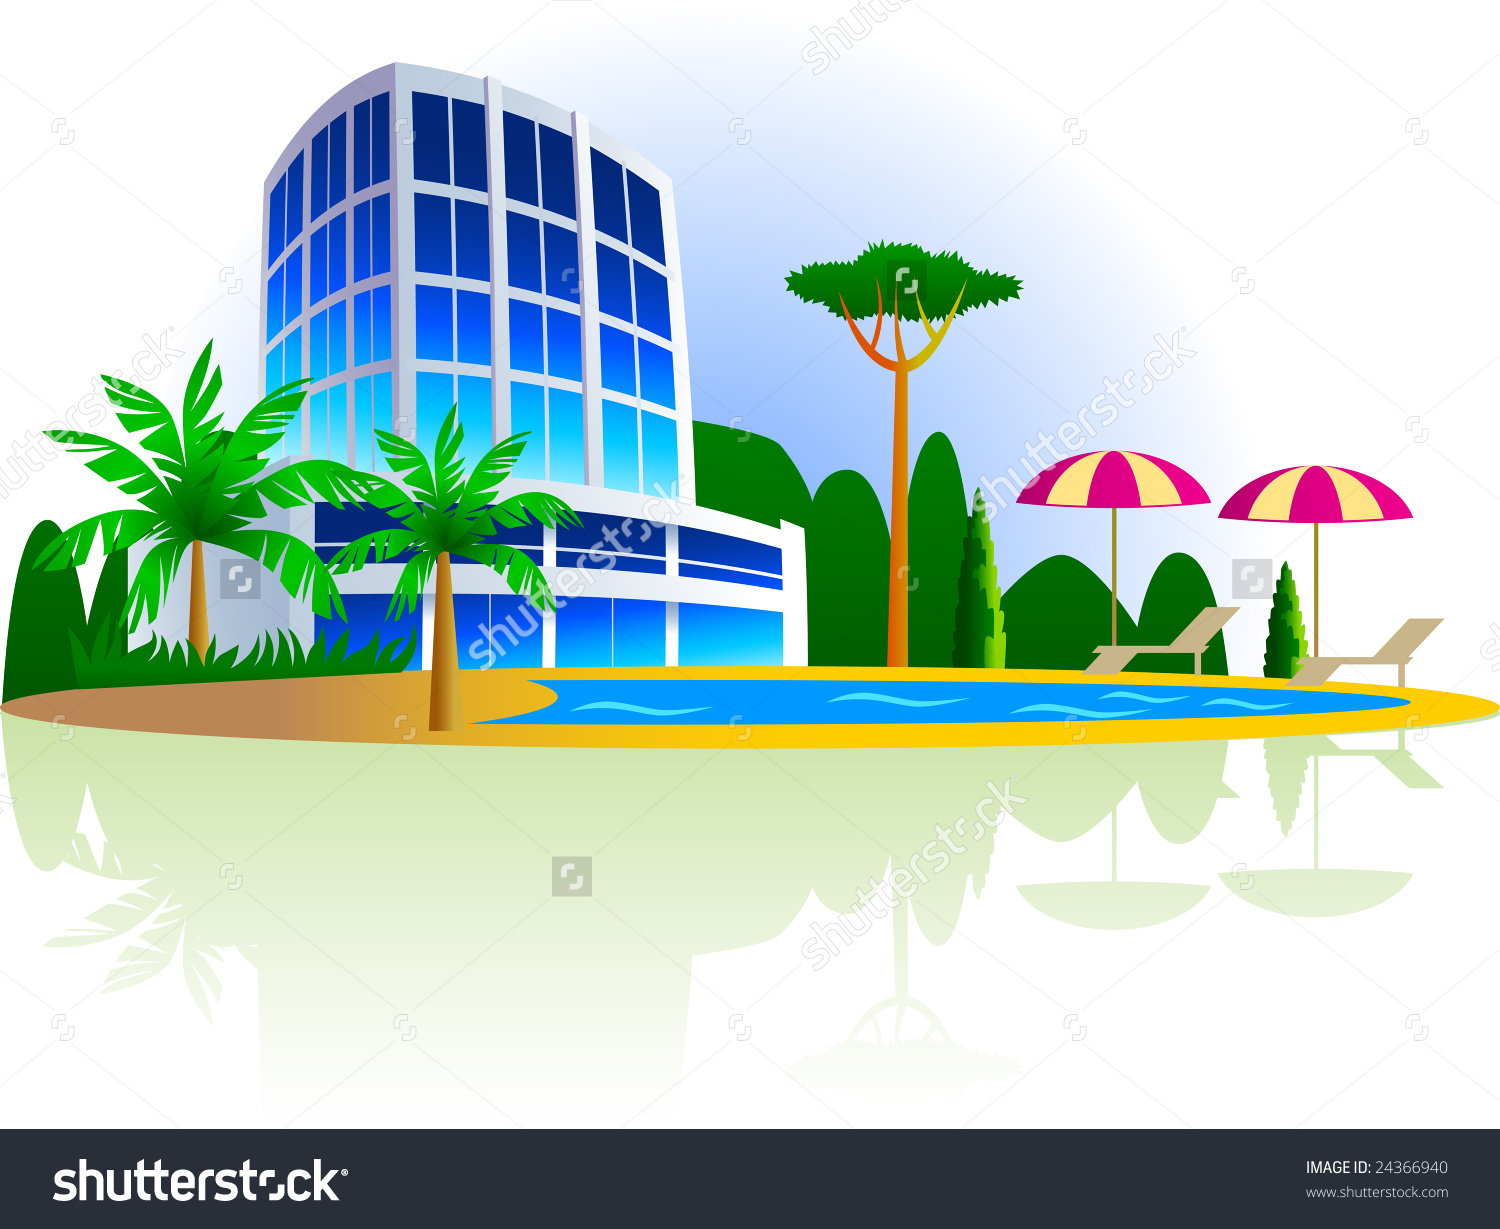 Clipart hotels & resorts free stock Resorts clipart 20 free Cliparts | Download images on Clipground 2019 free stock